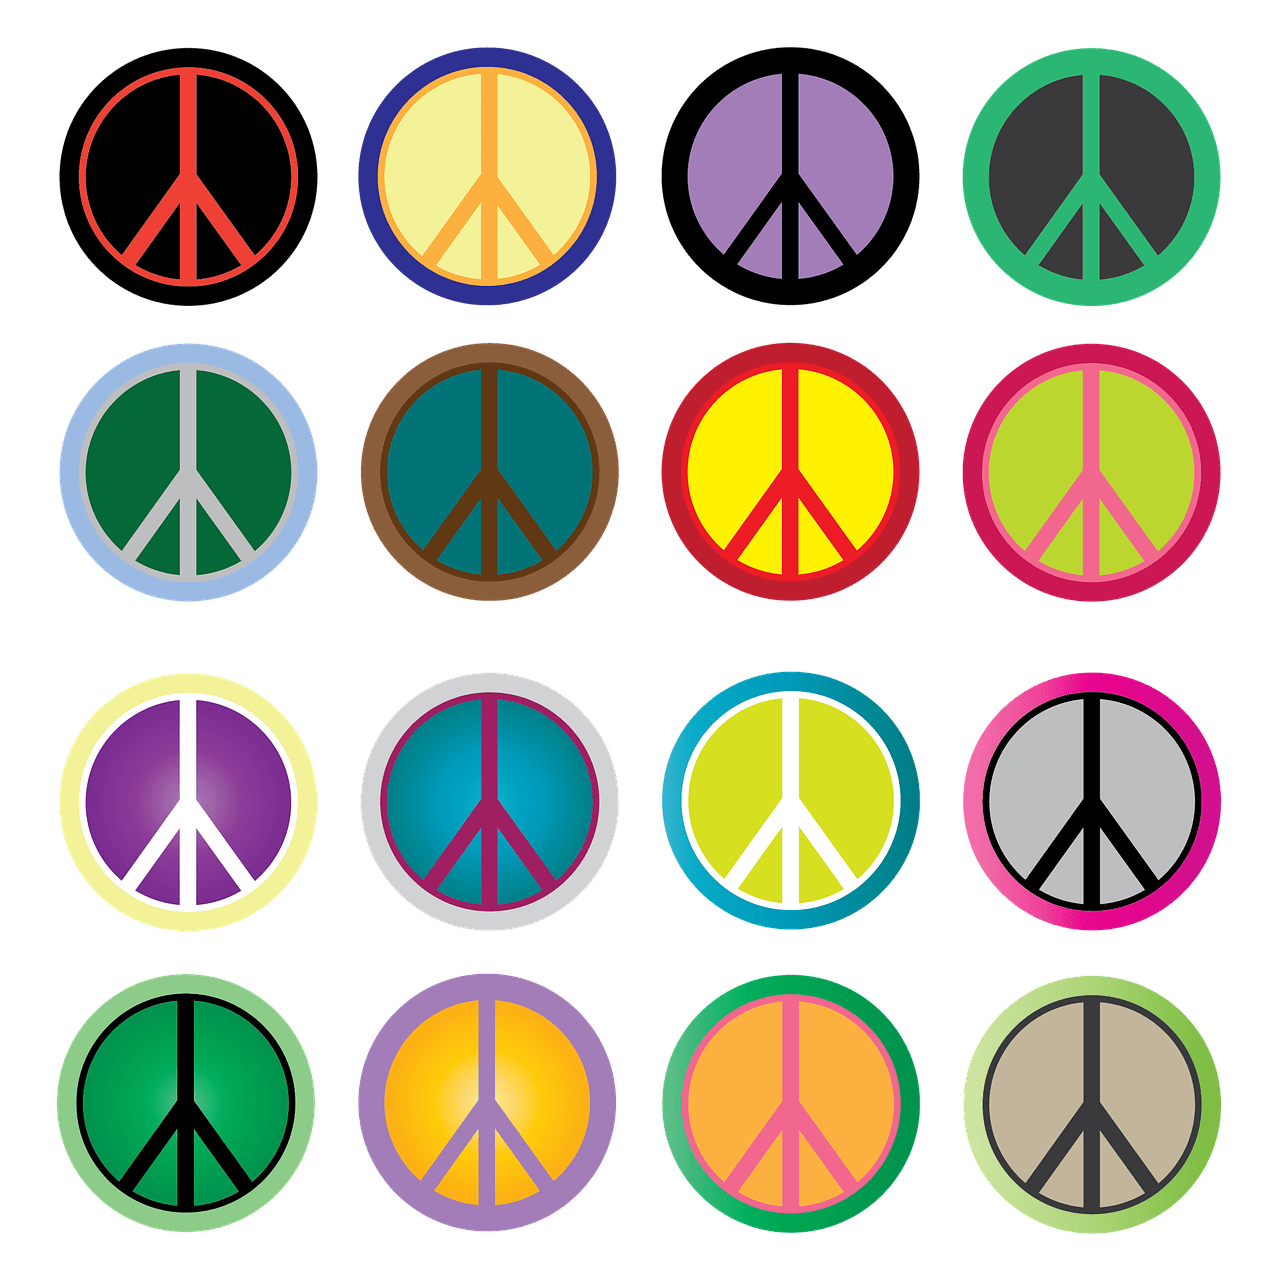 Atg Quirkies Now You Can Rest In Peacee Origin Of The Peace